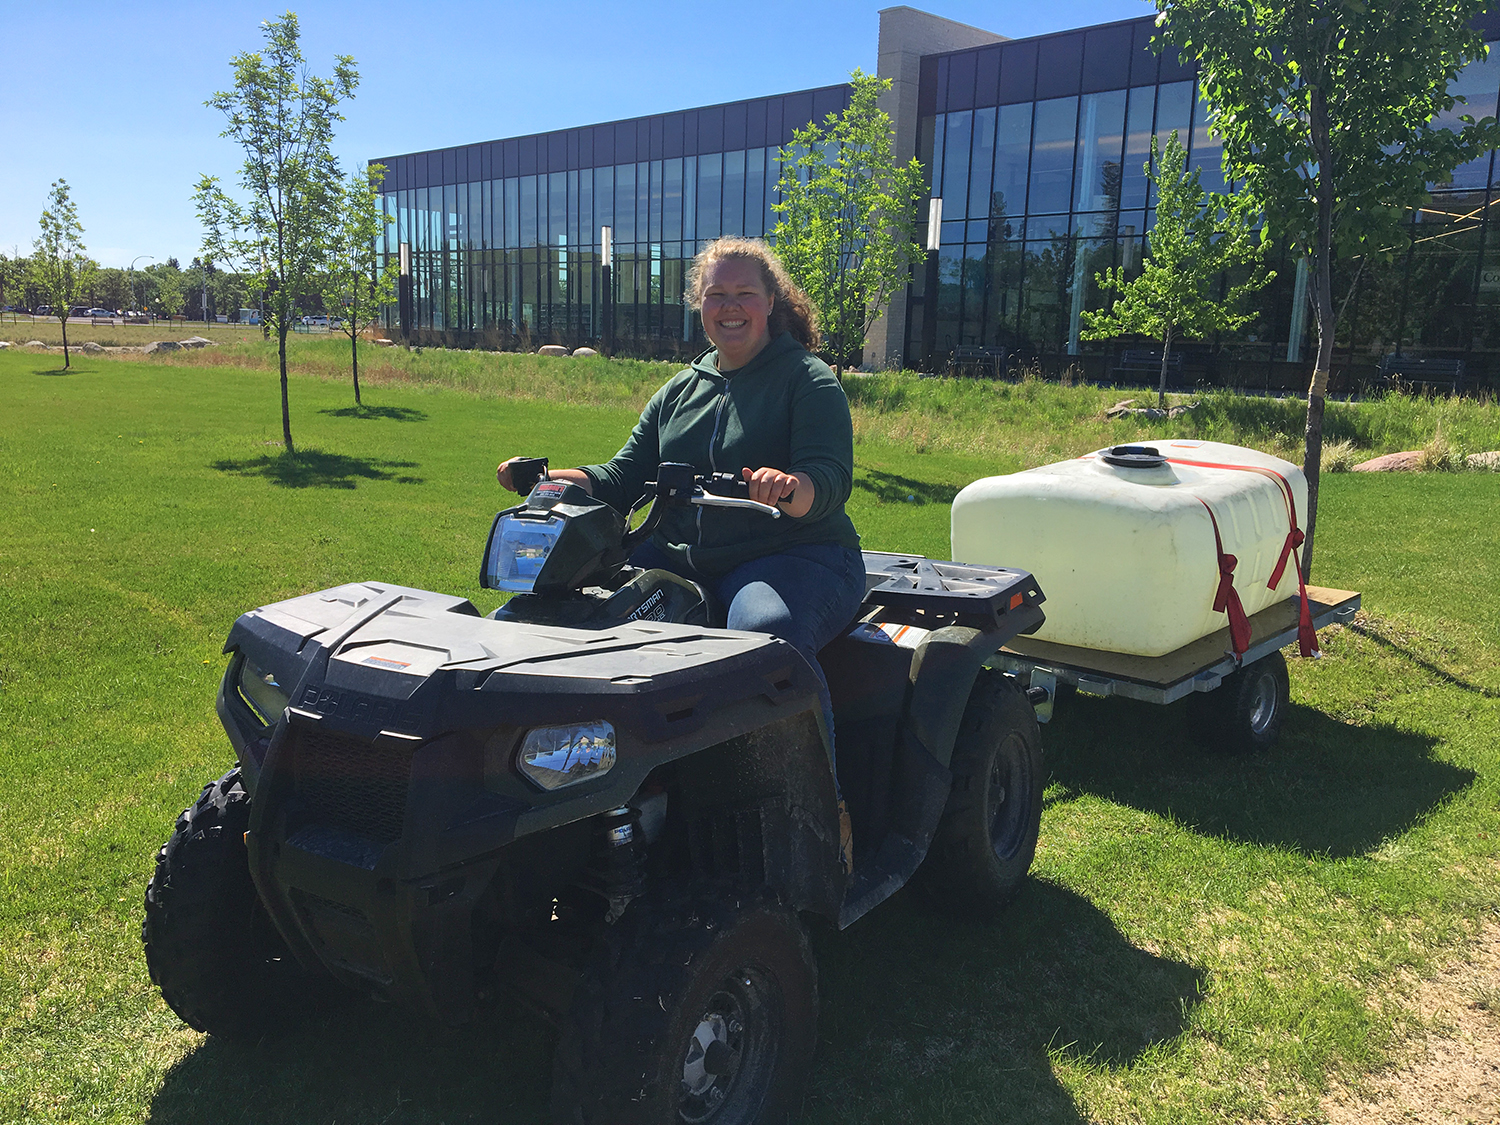 Summer jobs: On-campus employment at CMU. Rebecca Janzen rides 'the quad' for her summer job as a groundskeeper at CMU.